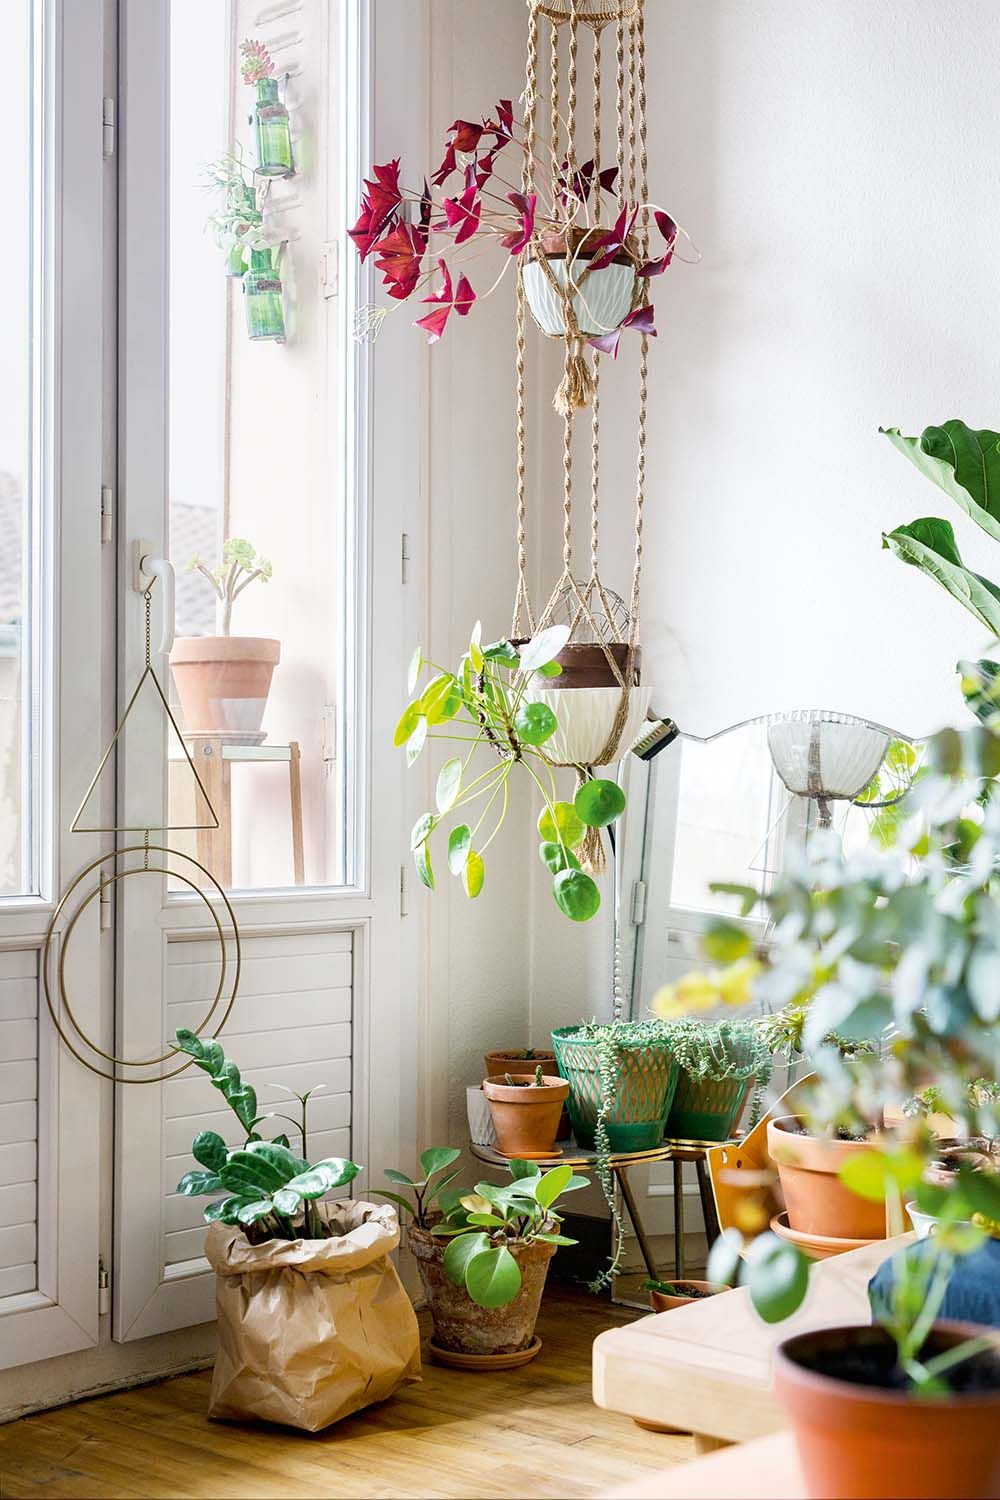 6 Ways To Decorate With Plants | Jungle book review, Plants and ...